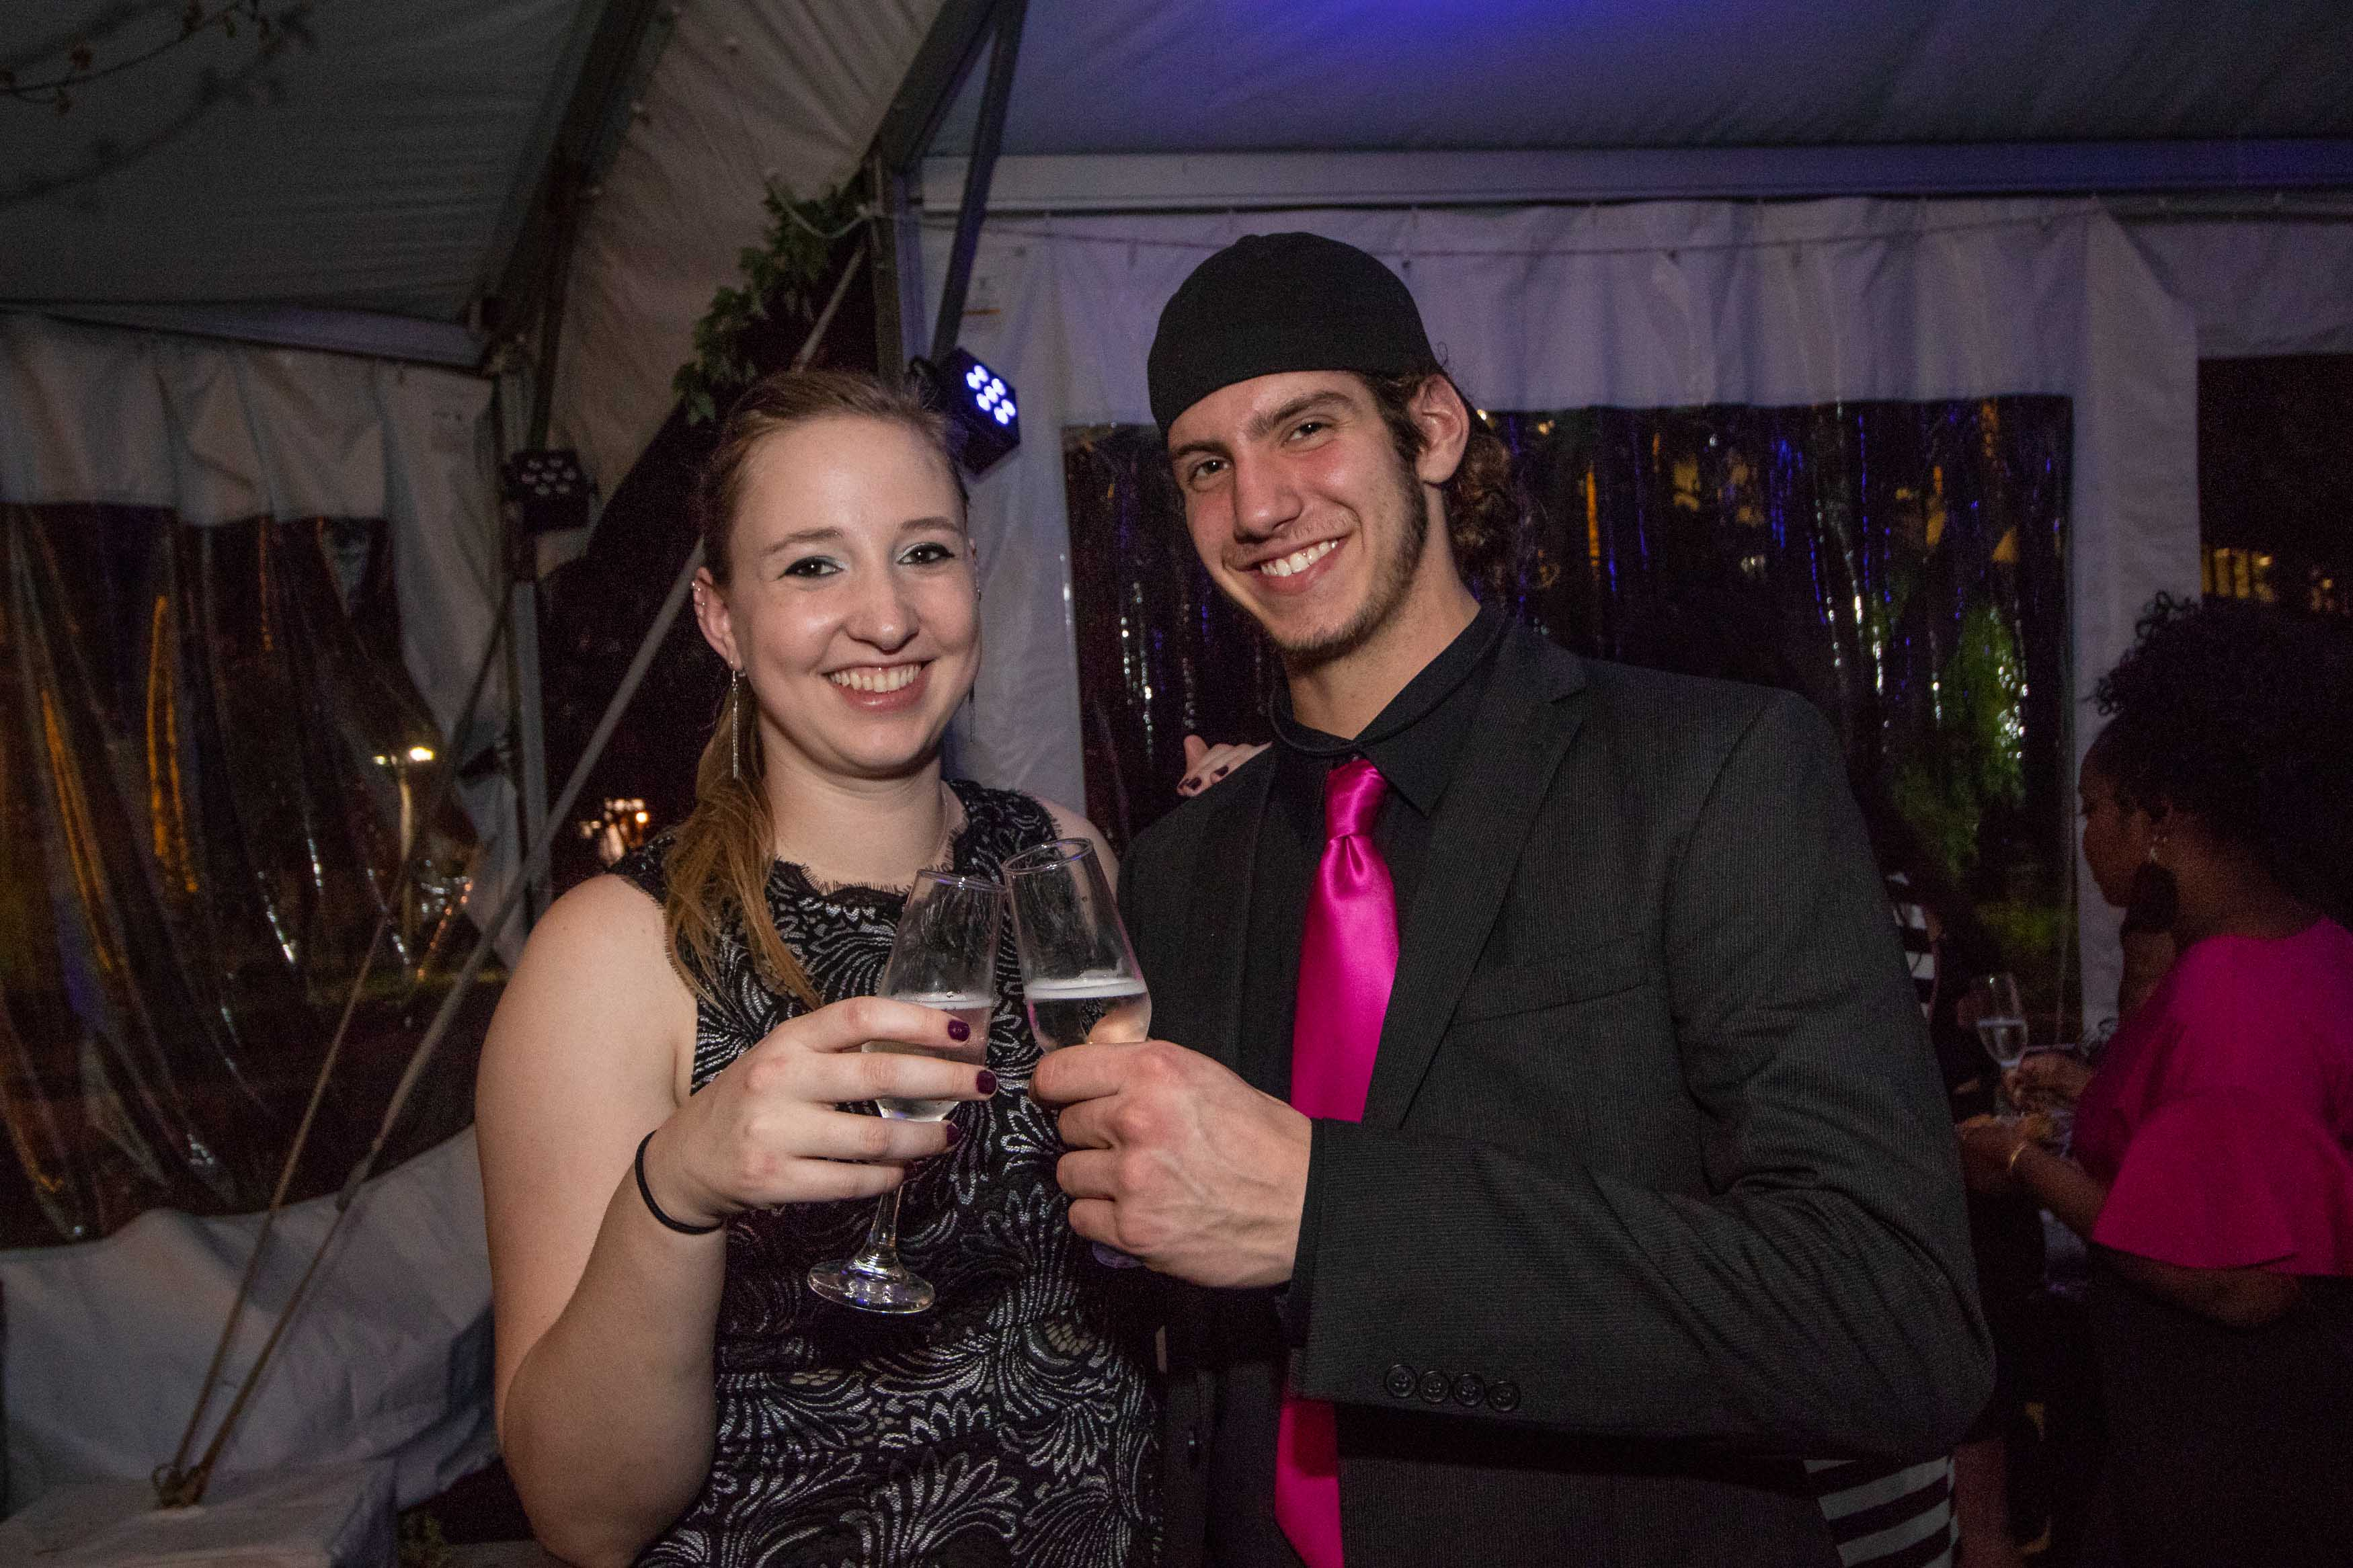 Man and woman clink glasses together